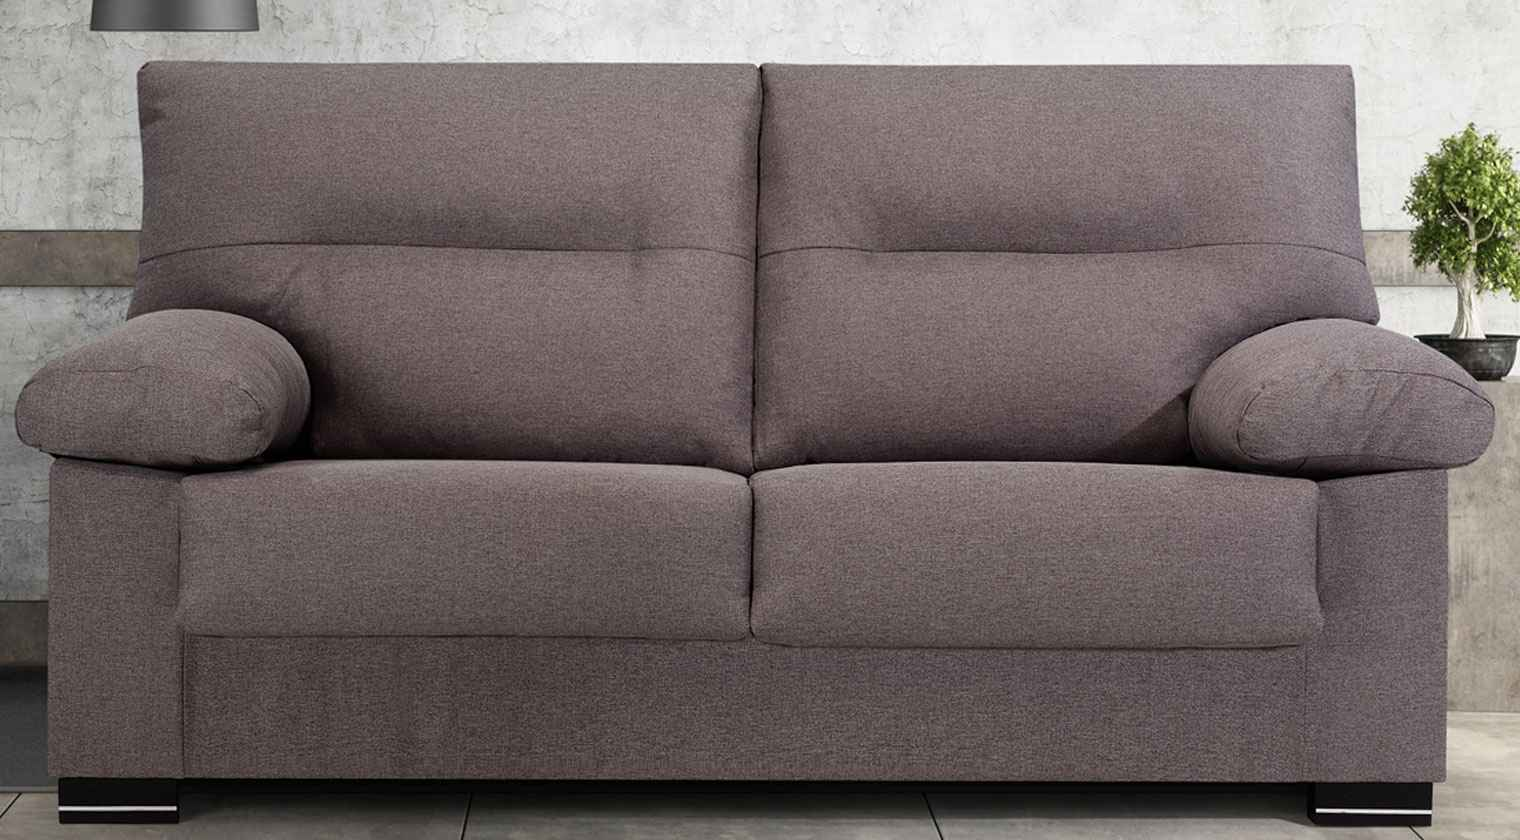 Sofas baratos ciudad real best sofa barato extensible for Sofas extensibles baratos